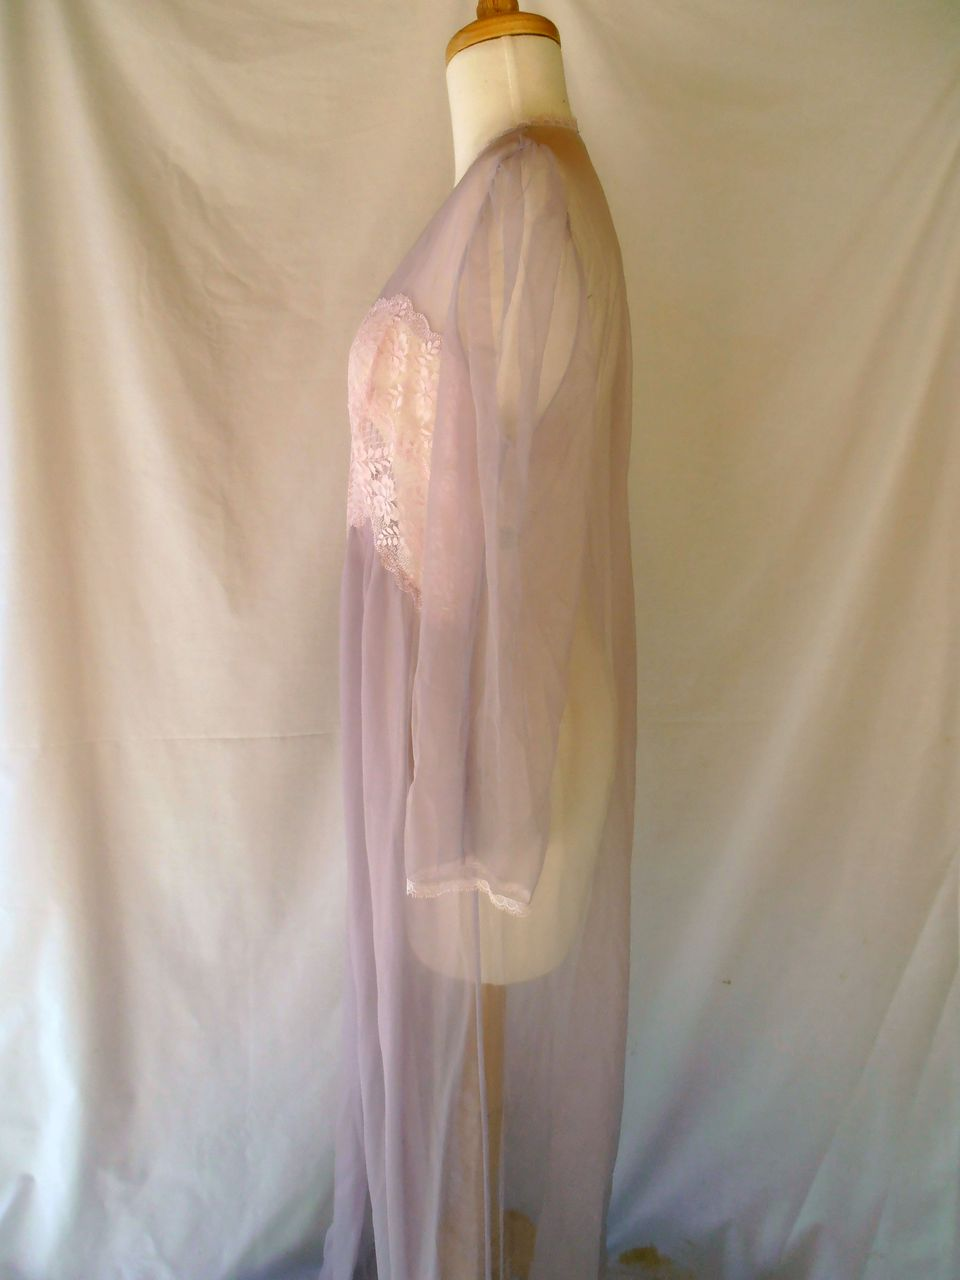 Lace-Sheer-Bras Vintage Large Sheer Lingerie Robe Nightgown Lace